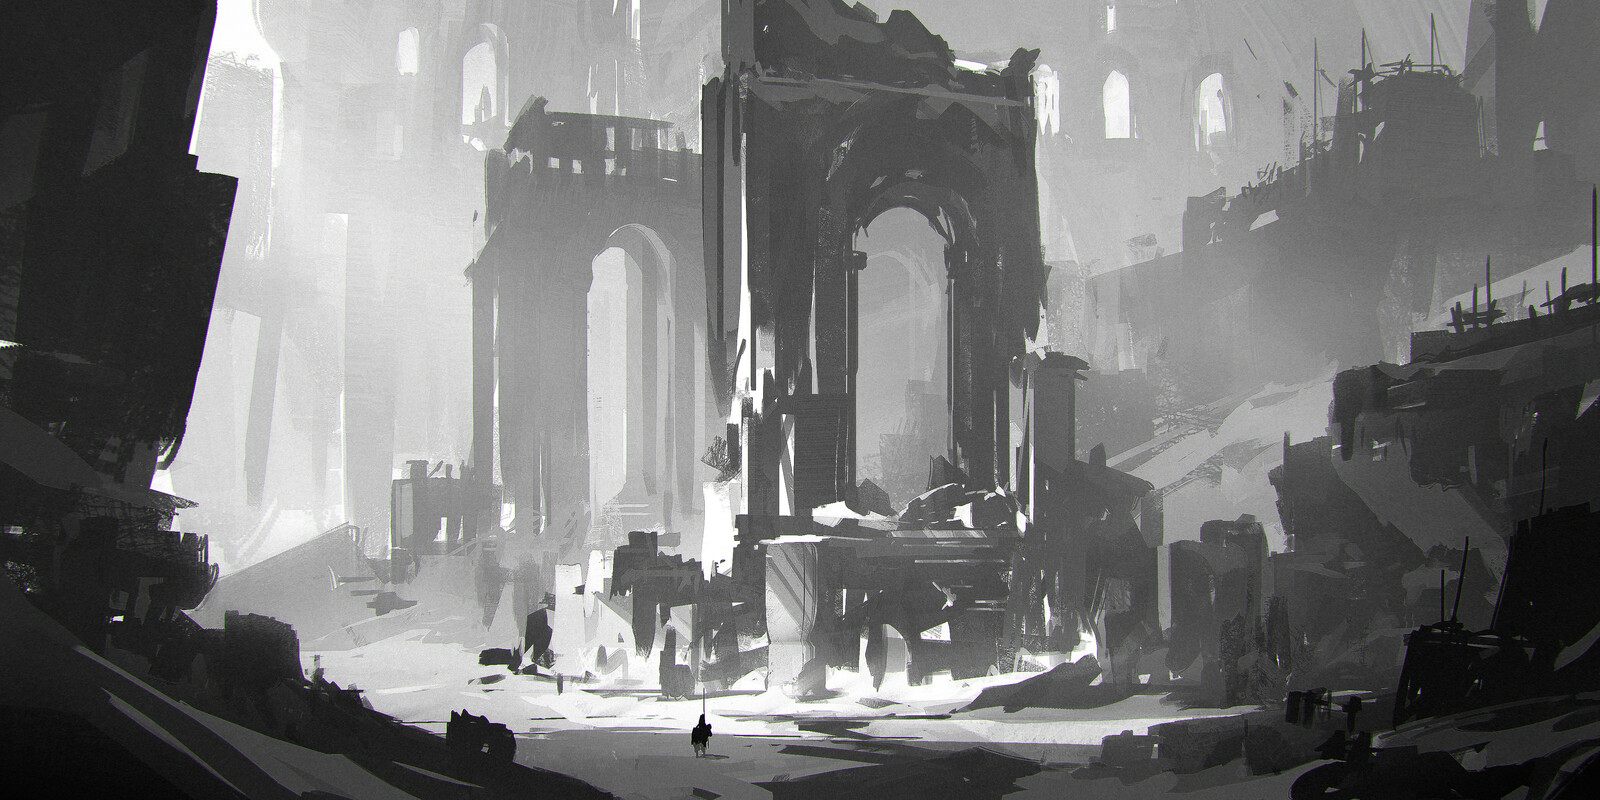 Daily Sketches 09 - 2021